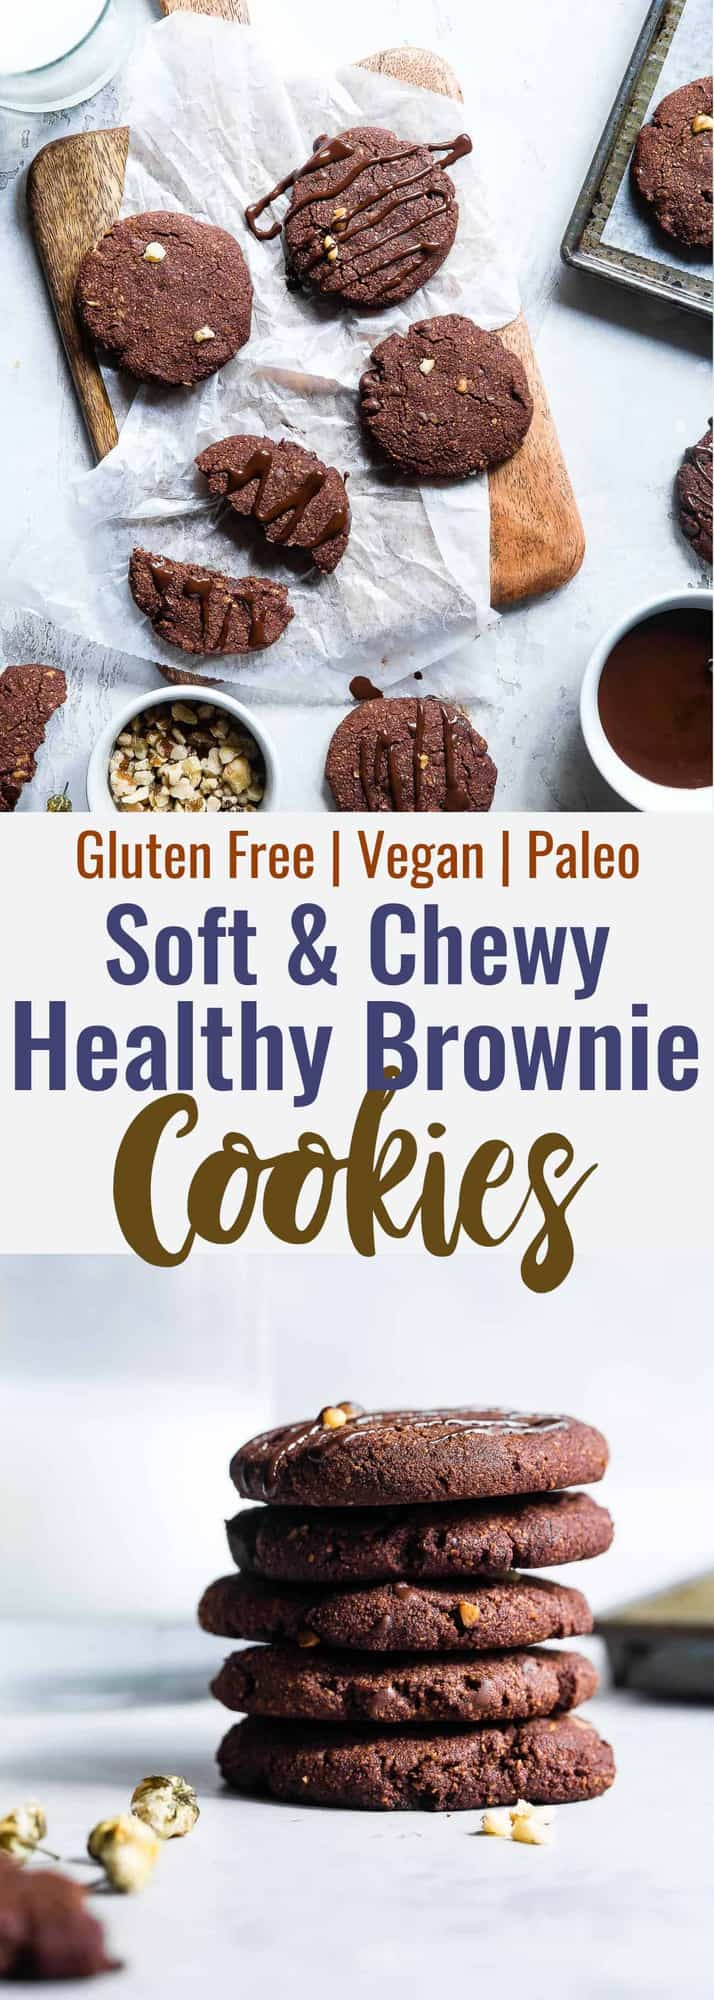 Vegan Gluten Free Brownie Cookies -These healthy and gluten free Chocolate Brownie Cookies are like always getting the edge piece- SO dense and chewy! You won't believe they're gluten free, paleo and only 120 calories! | #Foodfaithfitness | #Vegan #Paleo #Glutenfree #Dairyfree #Healthy